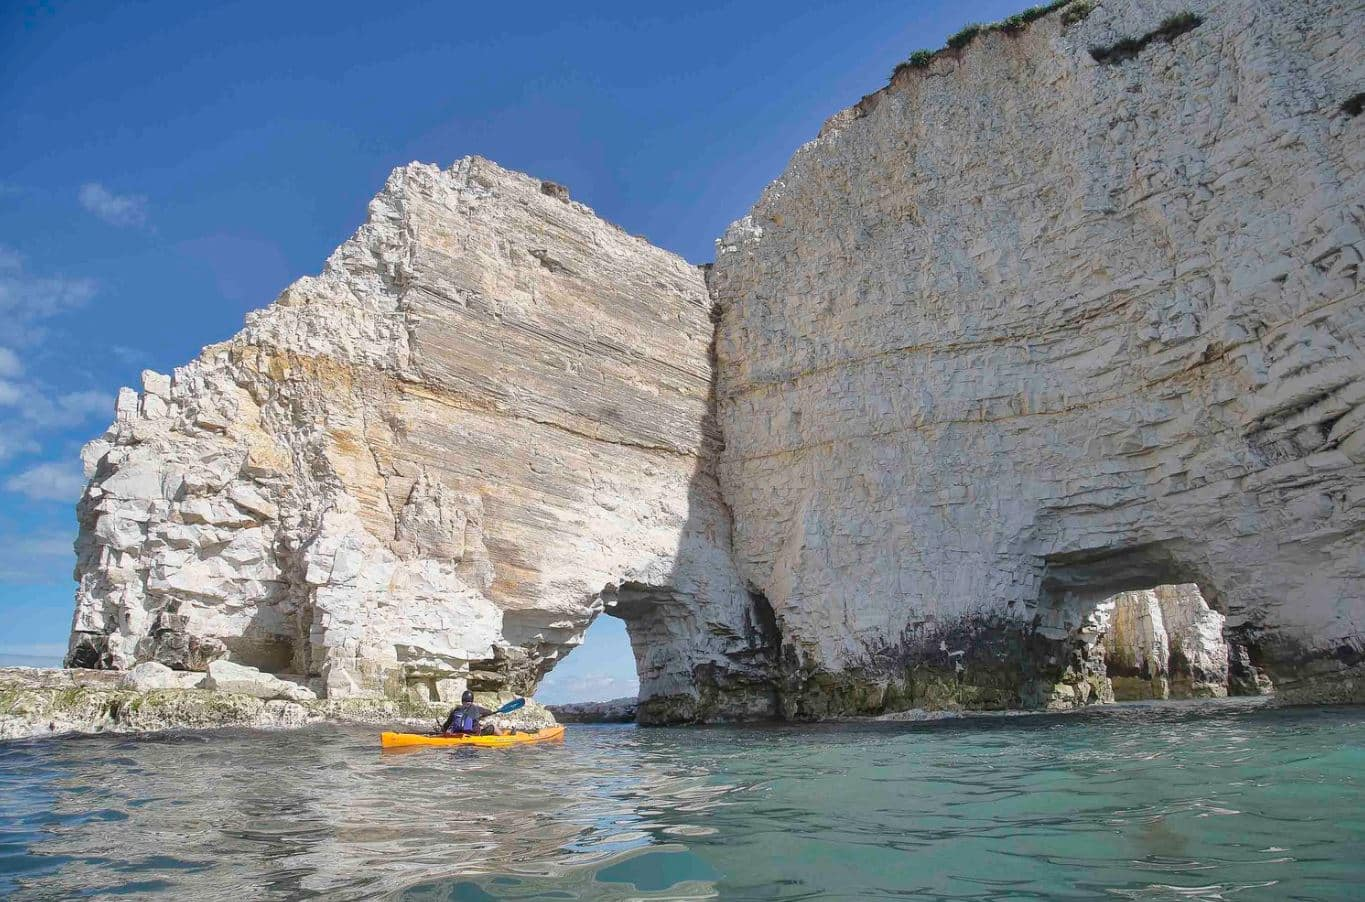 Hire a kayak from Studland Watersports at Knoll Beach to get up close to Dorset's famous Old Harry rocks.